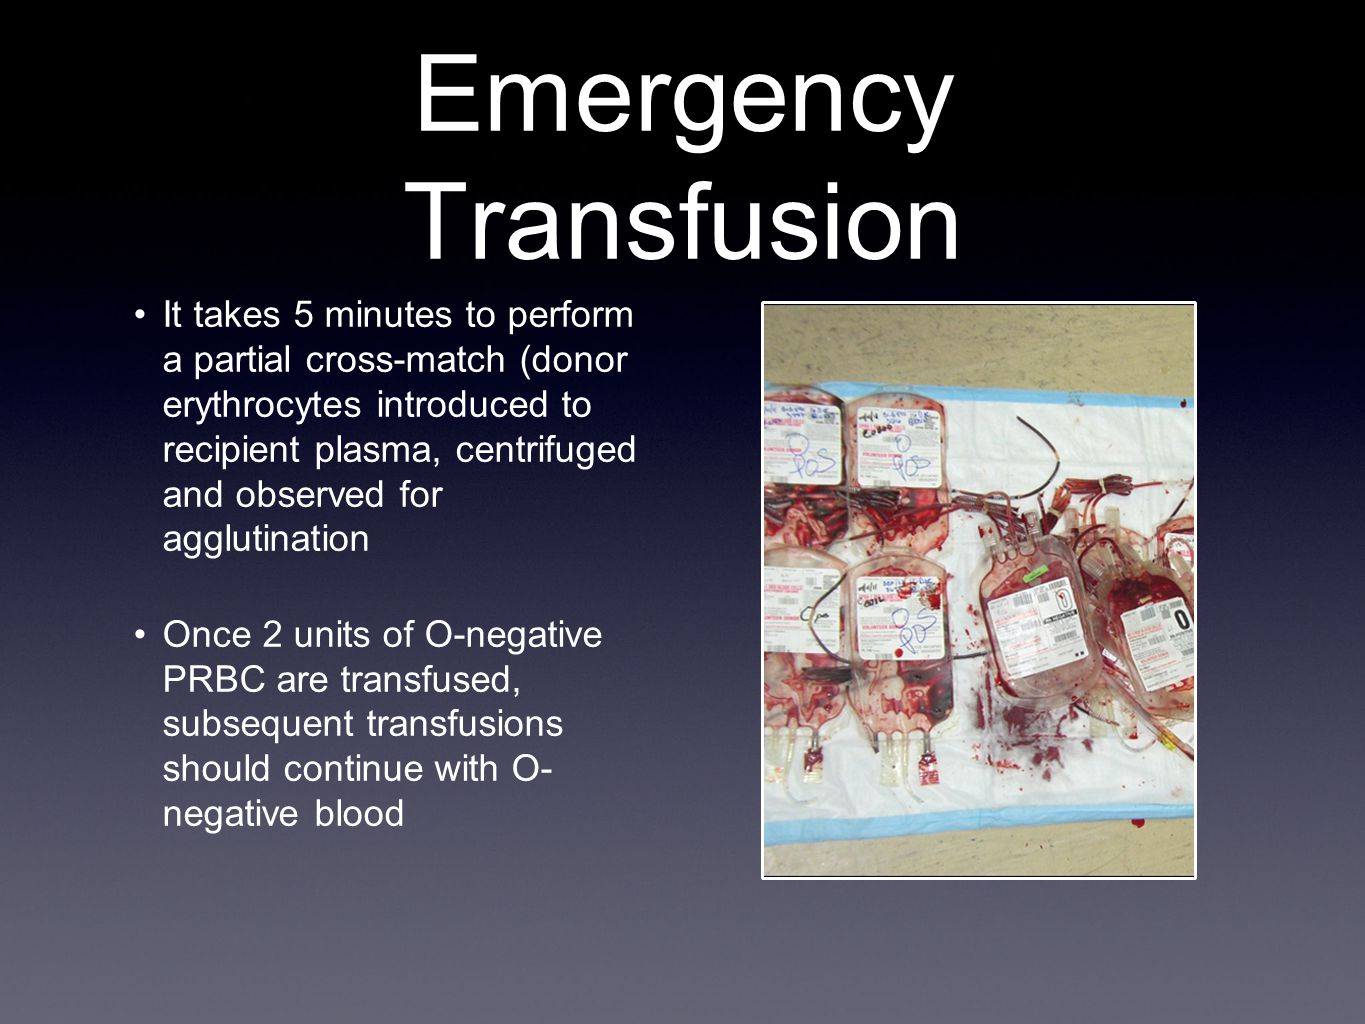 Emergency Transfusion It takes 5 minutes to perform a partial cross-match (donor erythrocytes introduced to recipient plasma, centrifuged and observed for agglutination Once 2 units of O-negative PRBC are transfused, subsequent transfusions should continue with O- negative blood